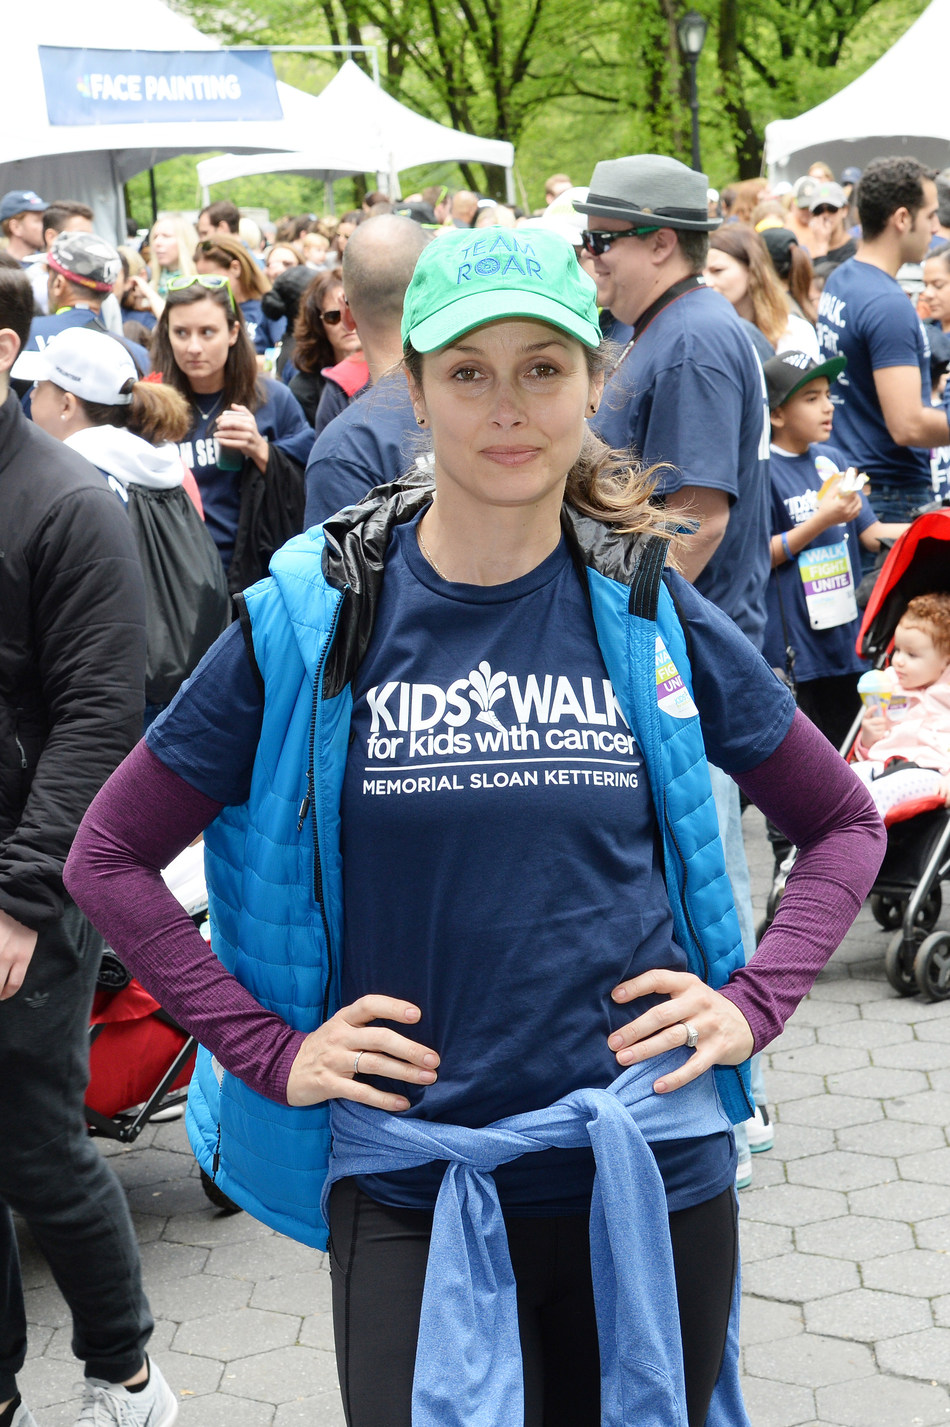 Actress Bridget Moynahan shows her support at the annual Kids Walk for Kids with Cancer event in Central Park in New York on May 6, 2017. Since it was established in 2001, Kids Walk has raised more than $5 million for pediatric cancer research at Memorial Sloan Kettering Cancer Center. Visit www.kidswalkmsk.org to learn more.